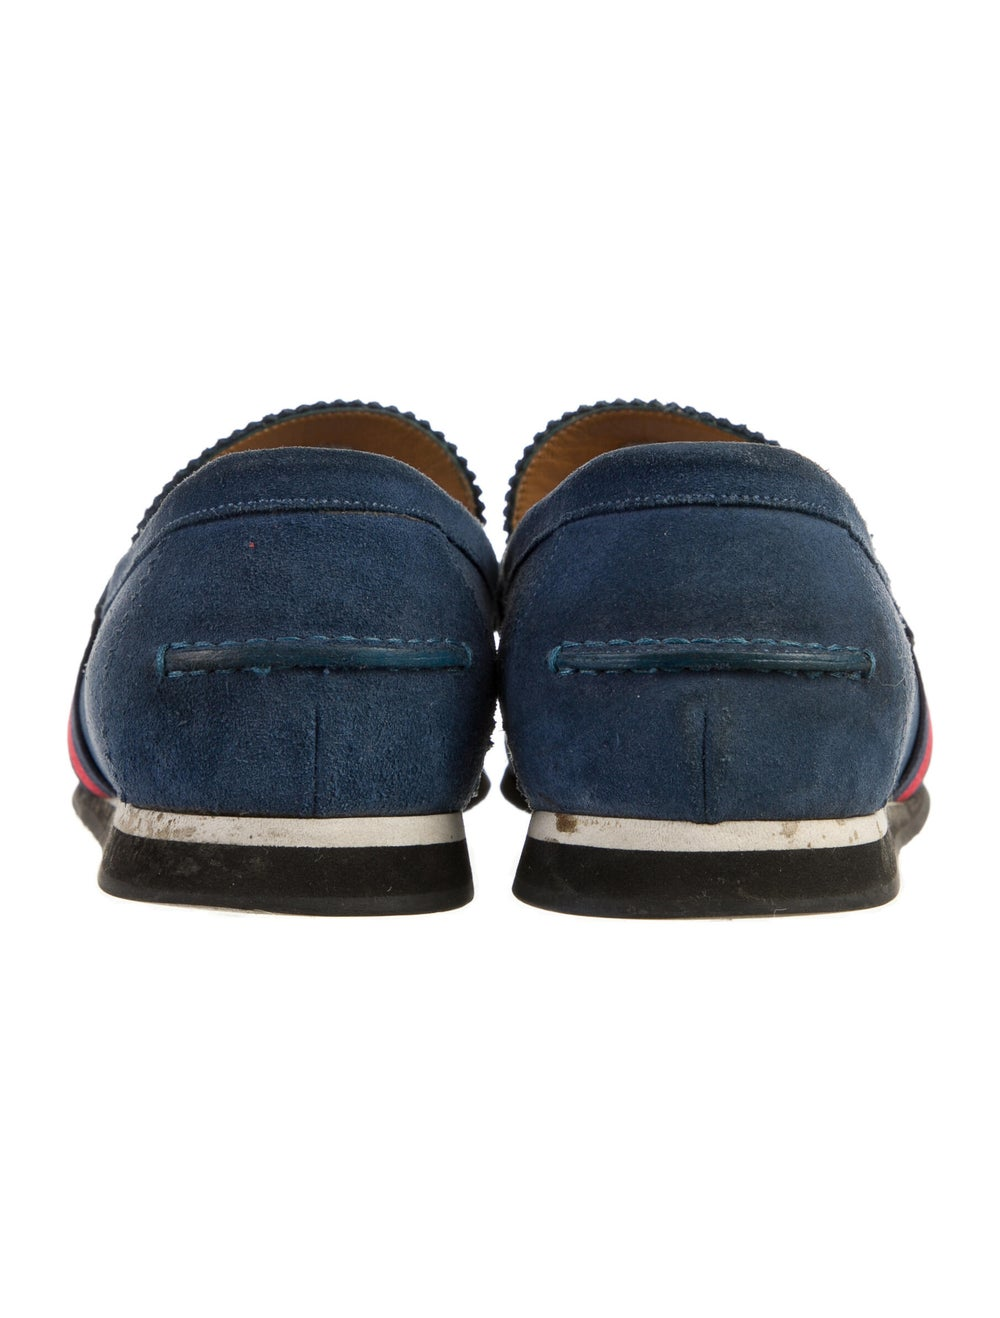 Gucci Suede Colorblock Pattern Loafers Blue - image 4